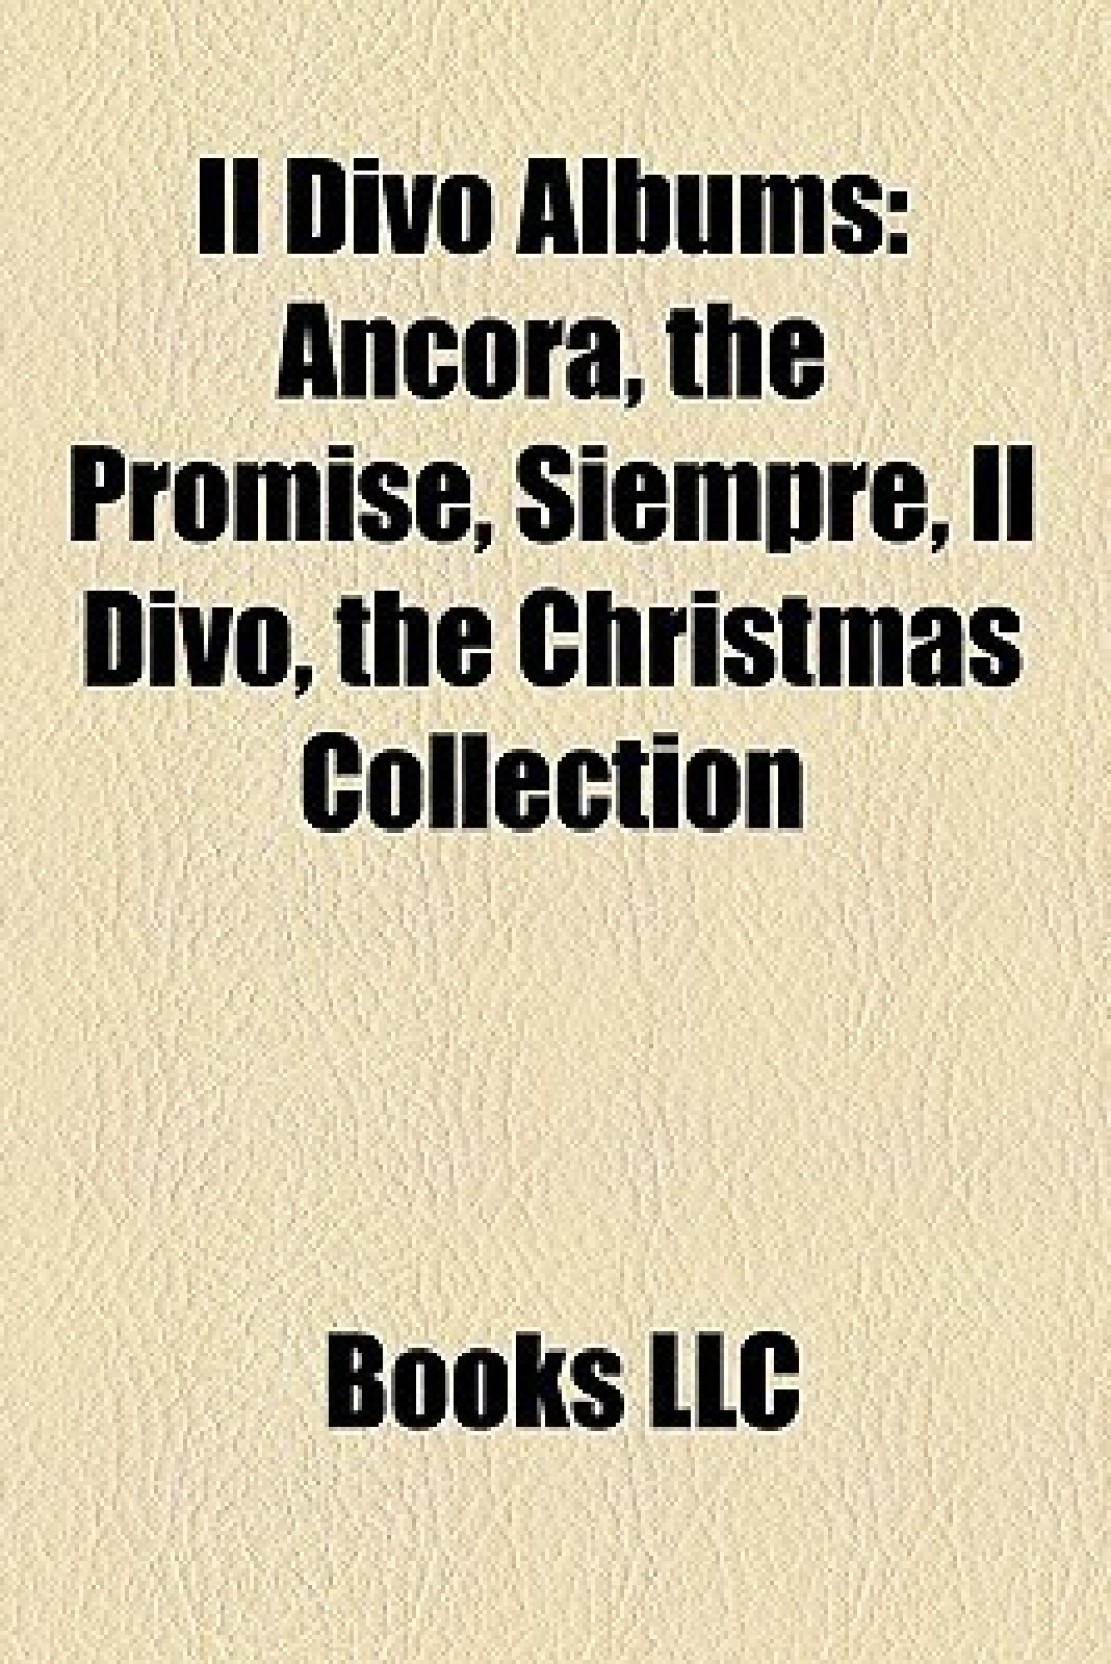 Il Divo Albums: Ancora, the Promise, Siempre, Il Divo, the Christmas ...